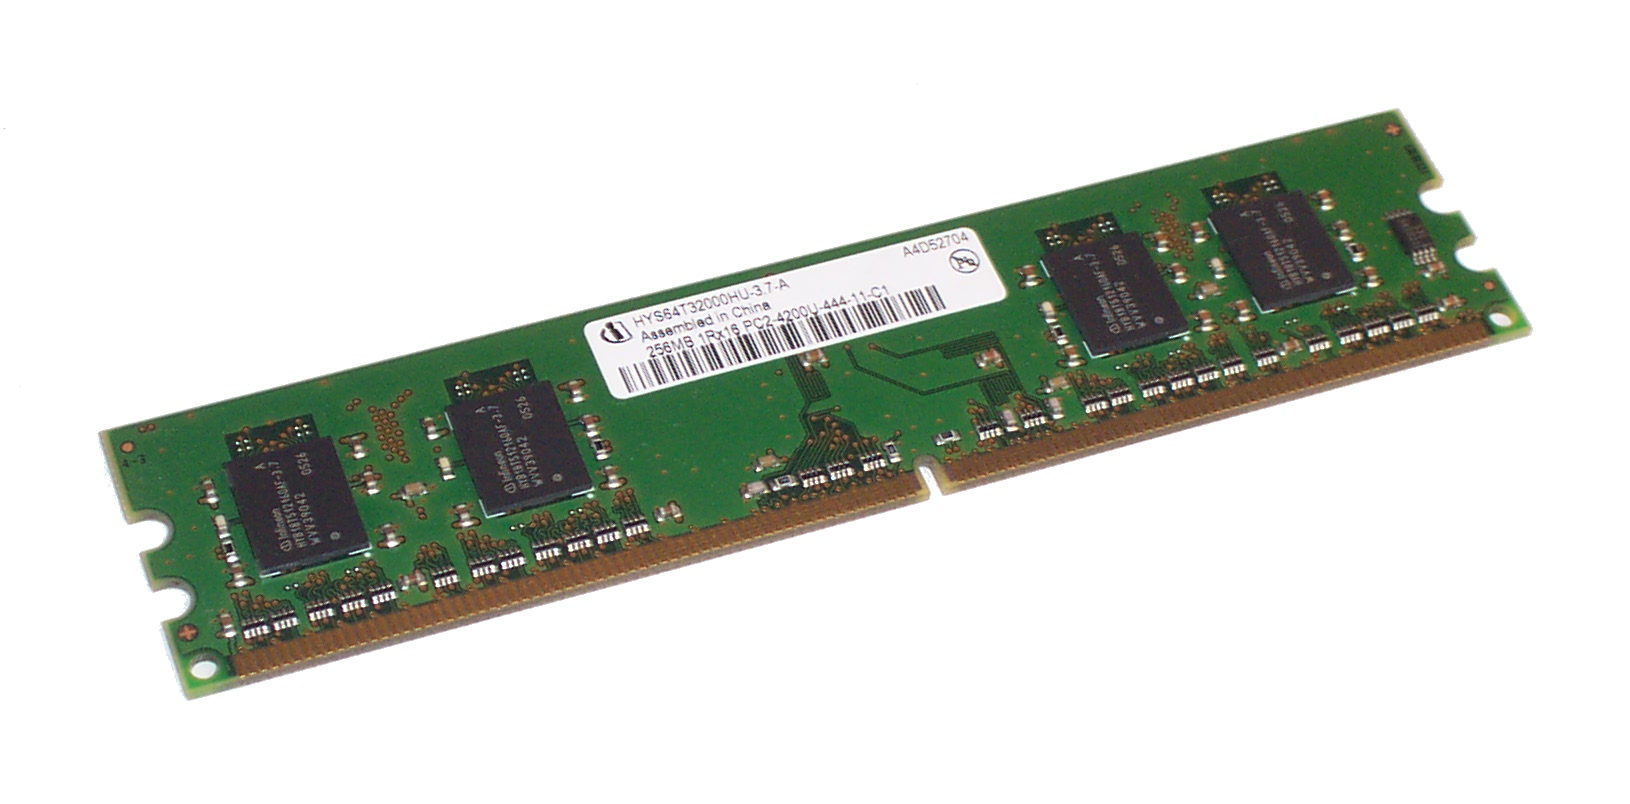 Infineon HYS64T32000HU-3.7-A 256MB PC2-4200 533MHz CL4 DDR2 DIMM